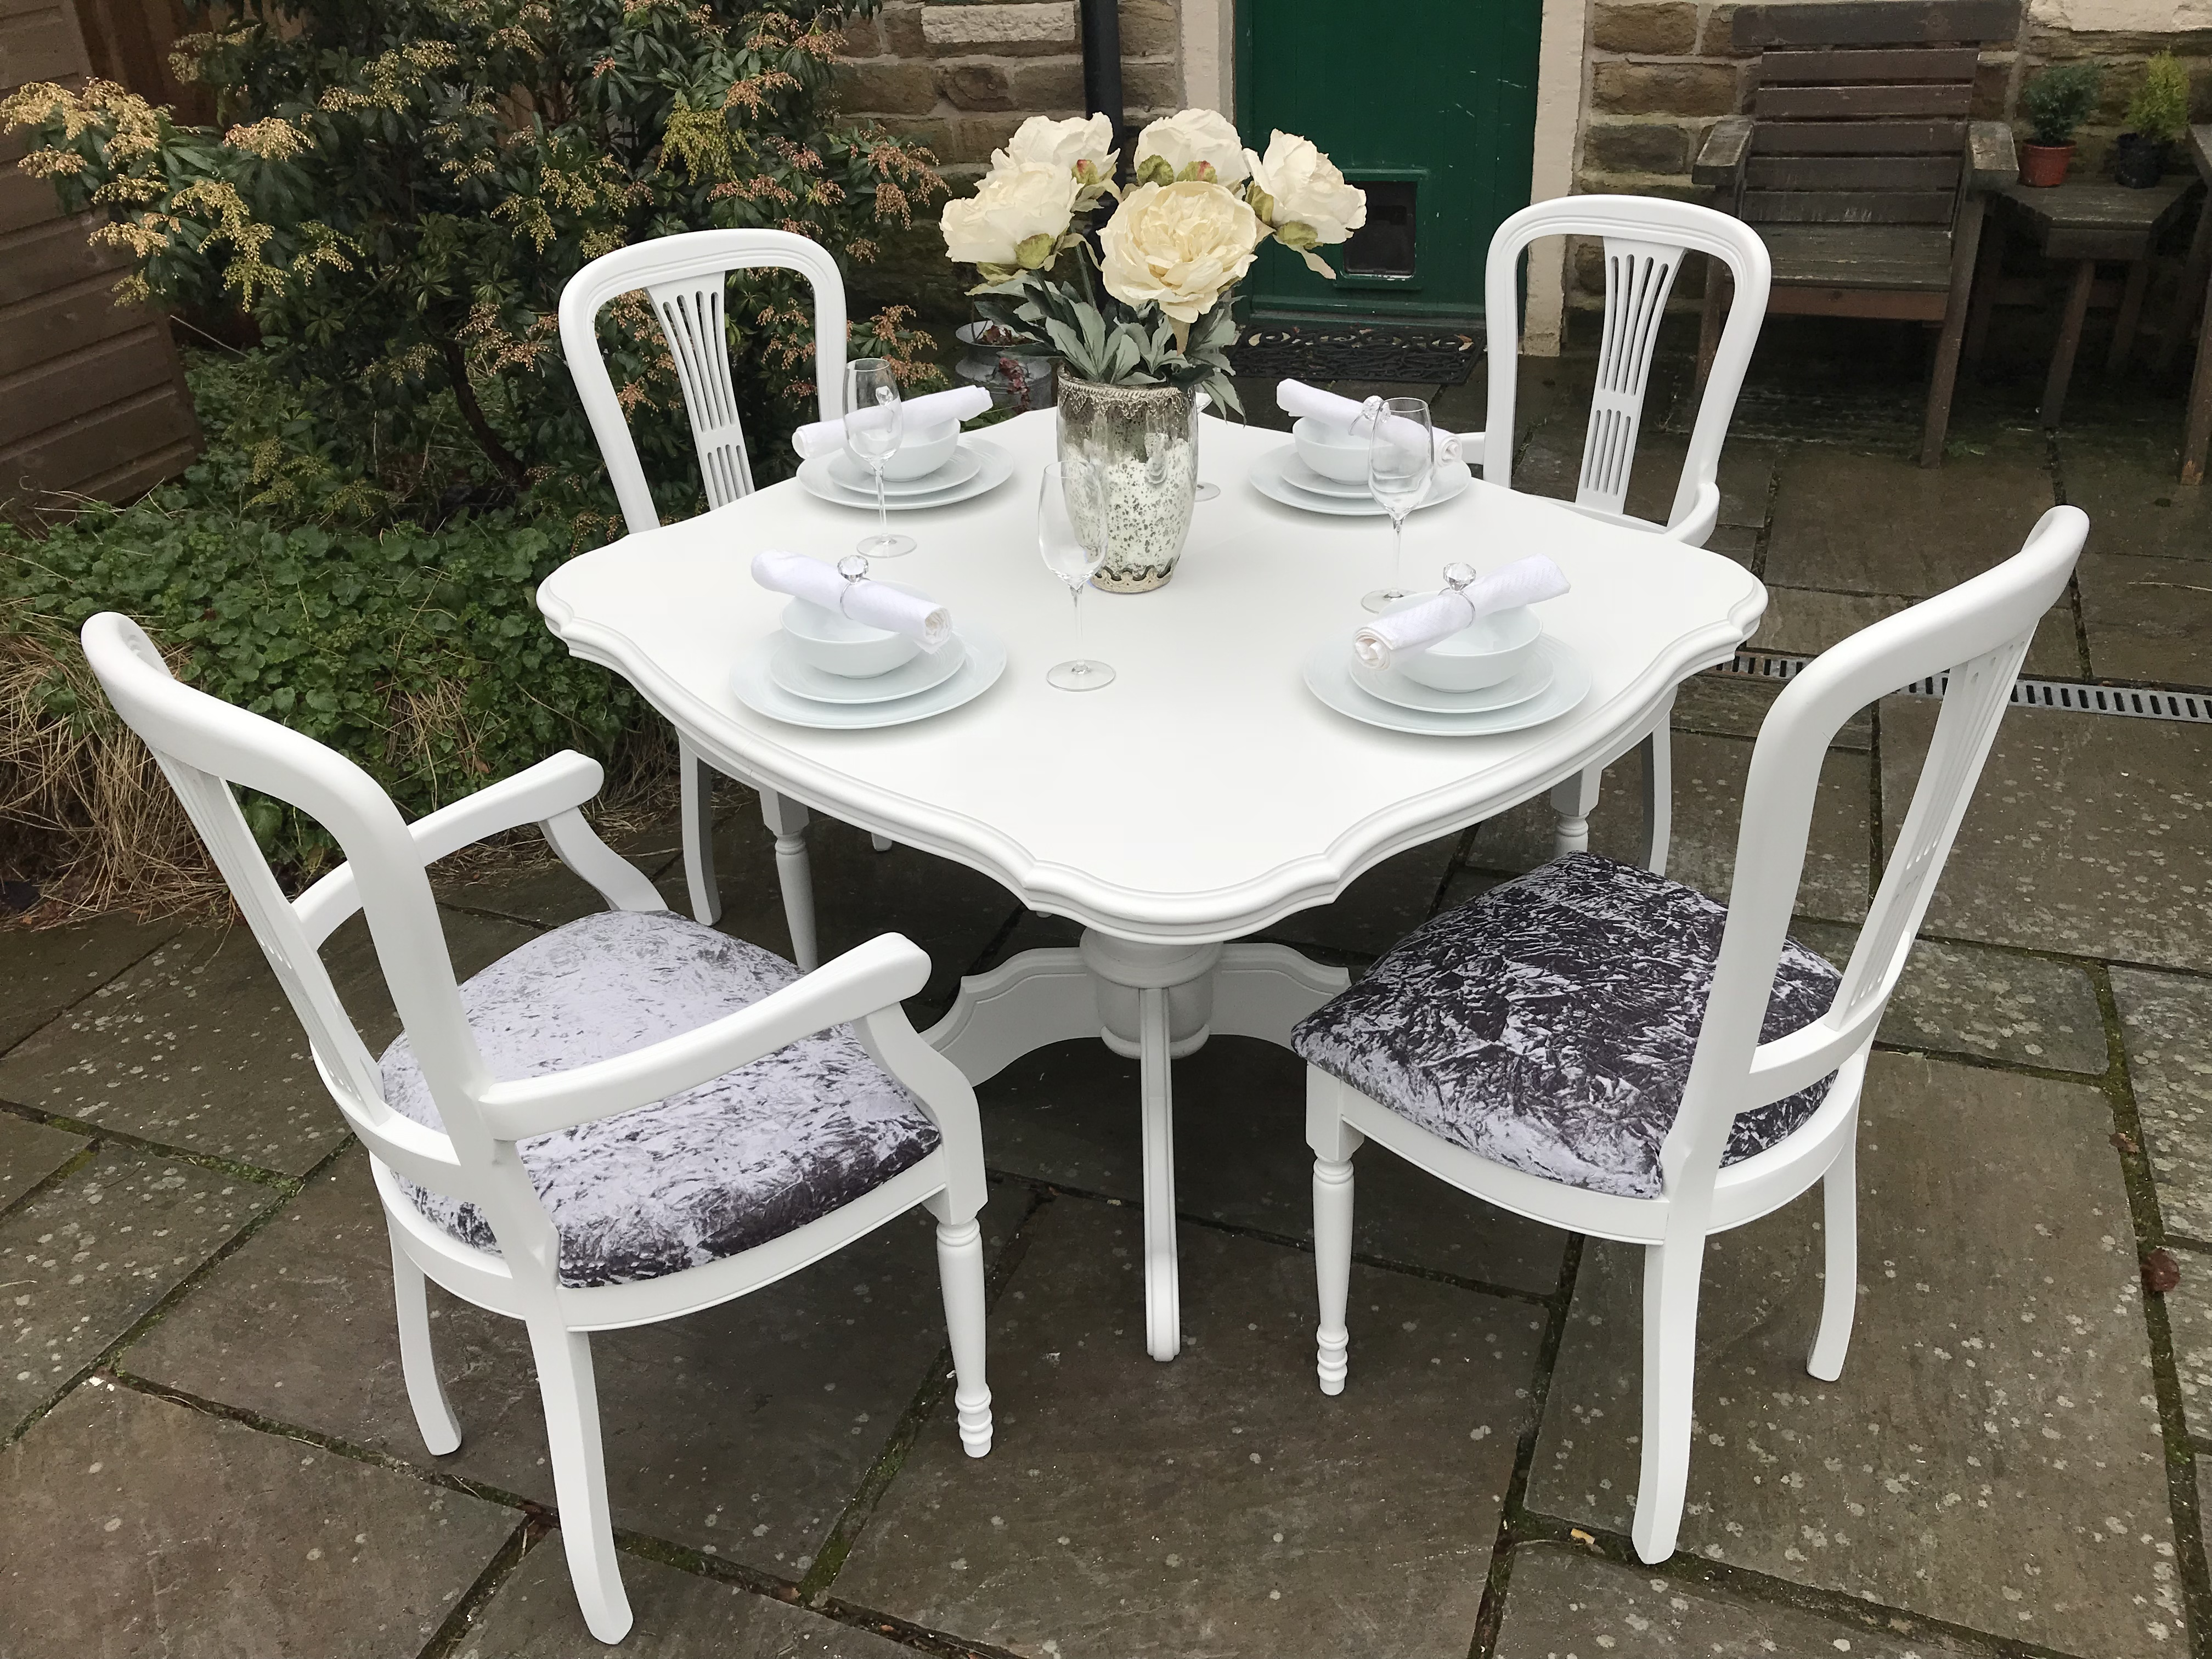 Elegant Vintage Dining Table & 6 Chairs